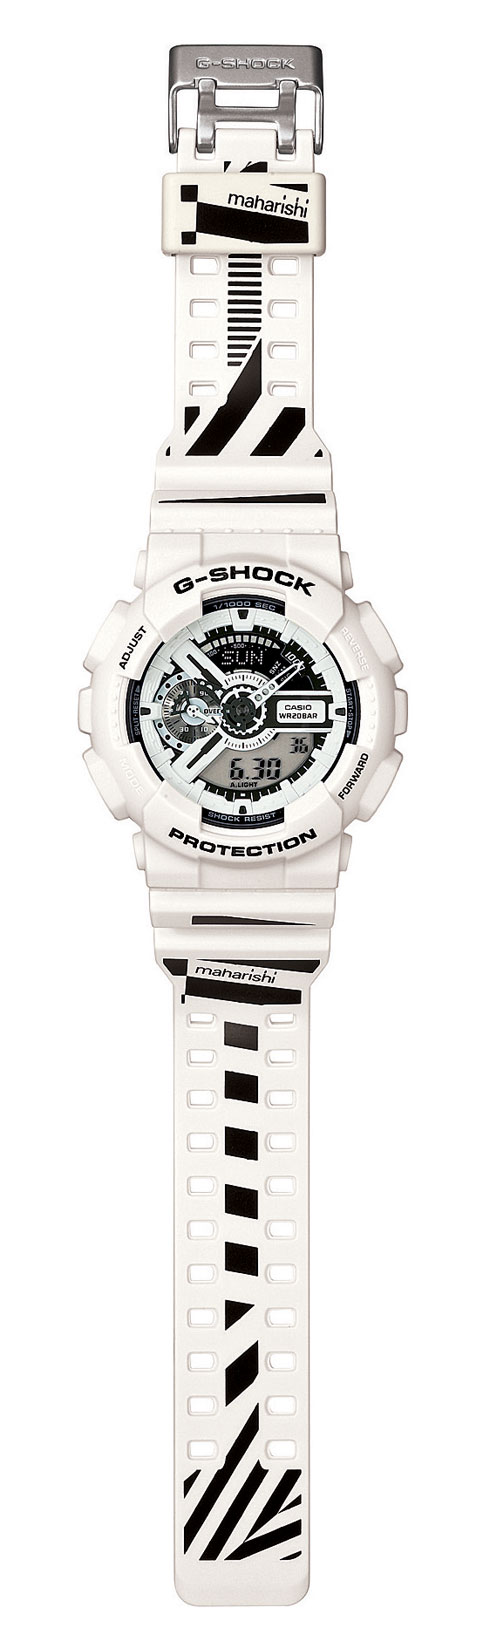 GA110MH-7A g-shock x maharishi watch 2012 collaboration